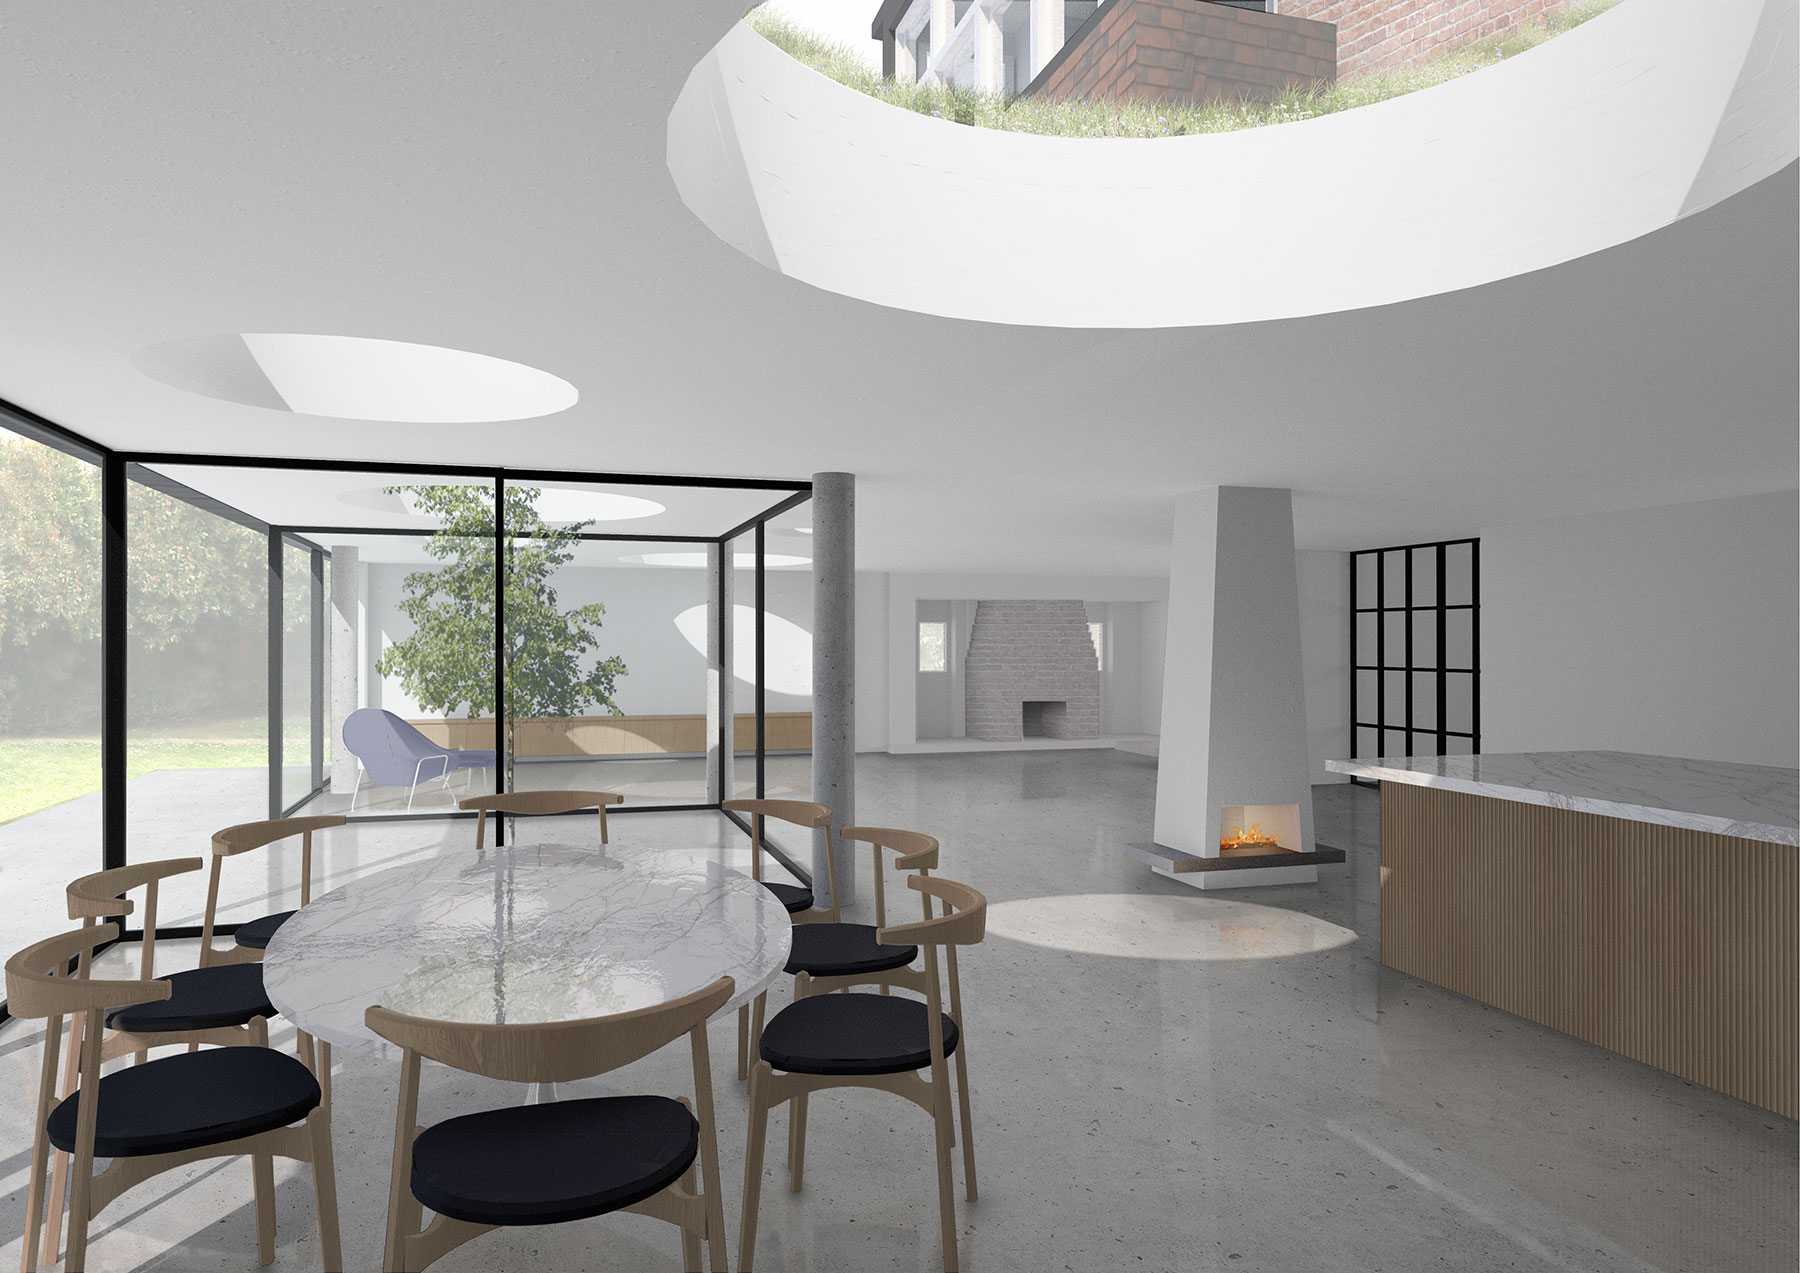 Interior visualisation of a large single storey rear extension at O-House, South London. The client came to us with a brief to open up the ground floor layout as far as possible to create a large, free-flowing kitchen and living space for entertaining whilst maximising opportunities for daylight and sunlight where the rear of house is North-West facing.